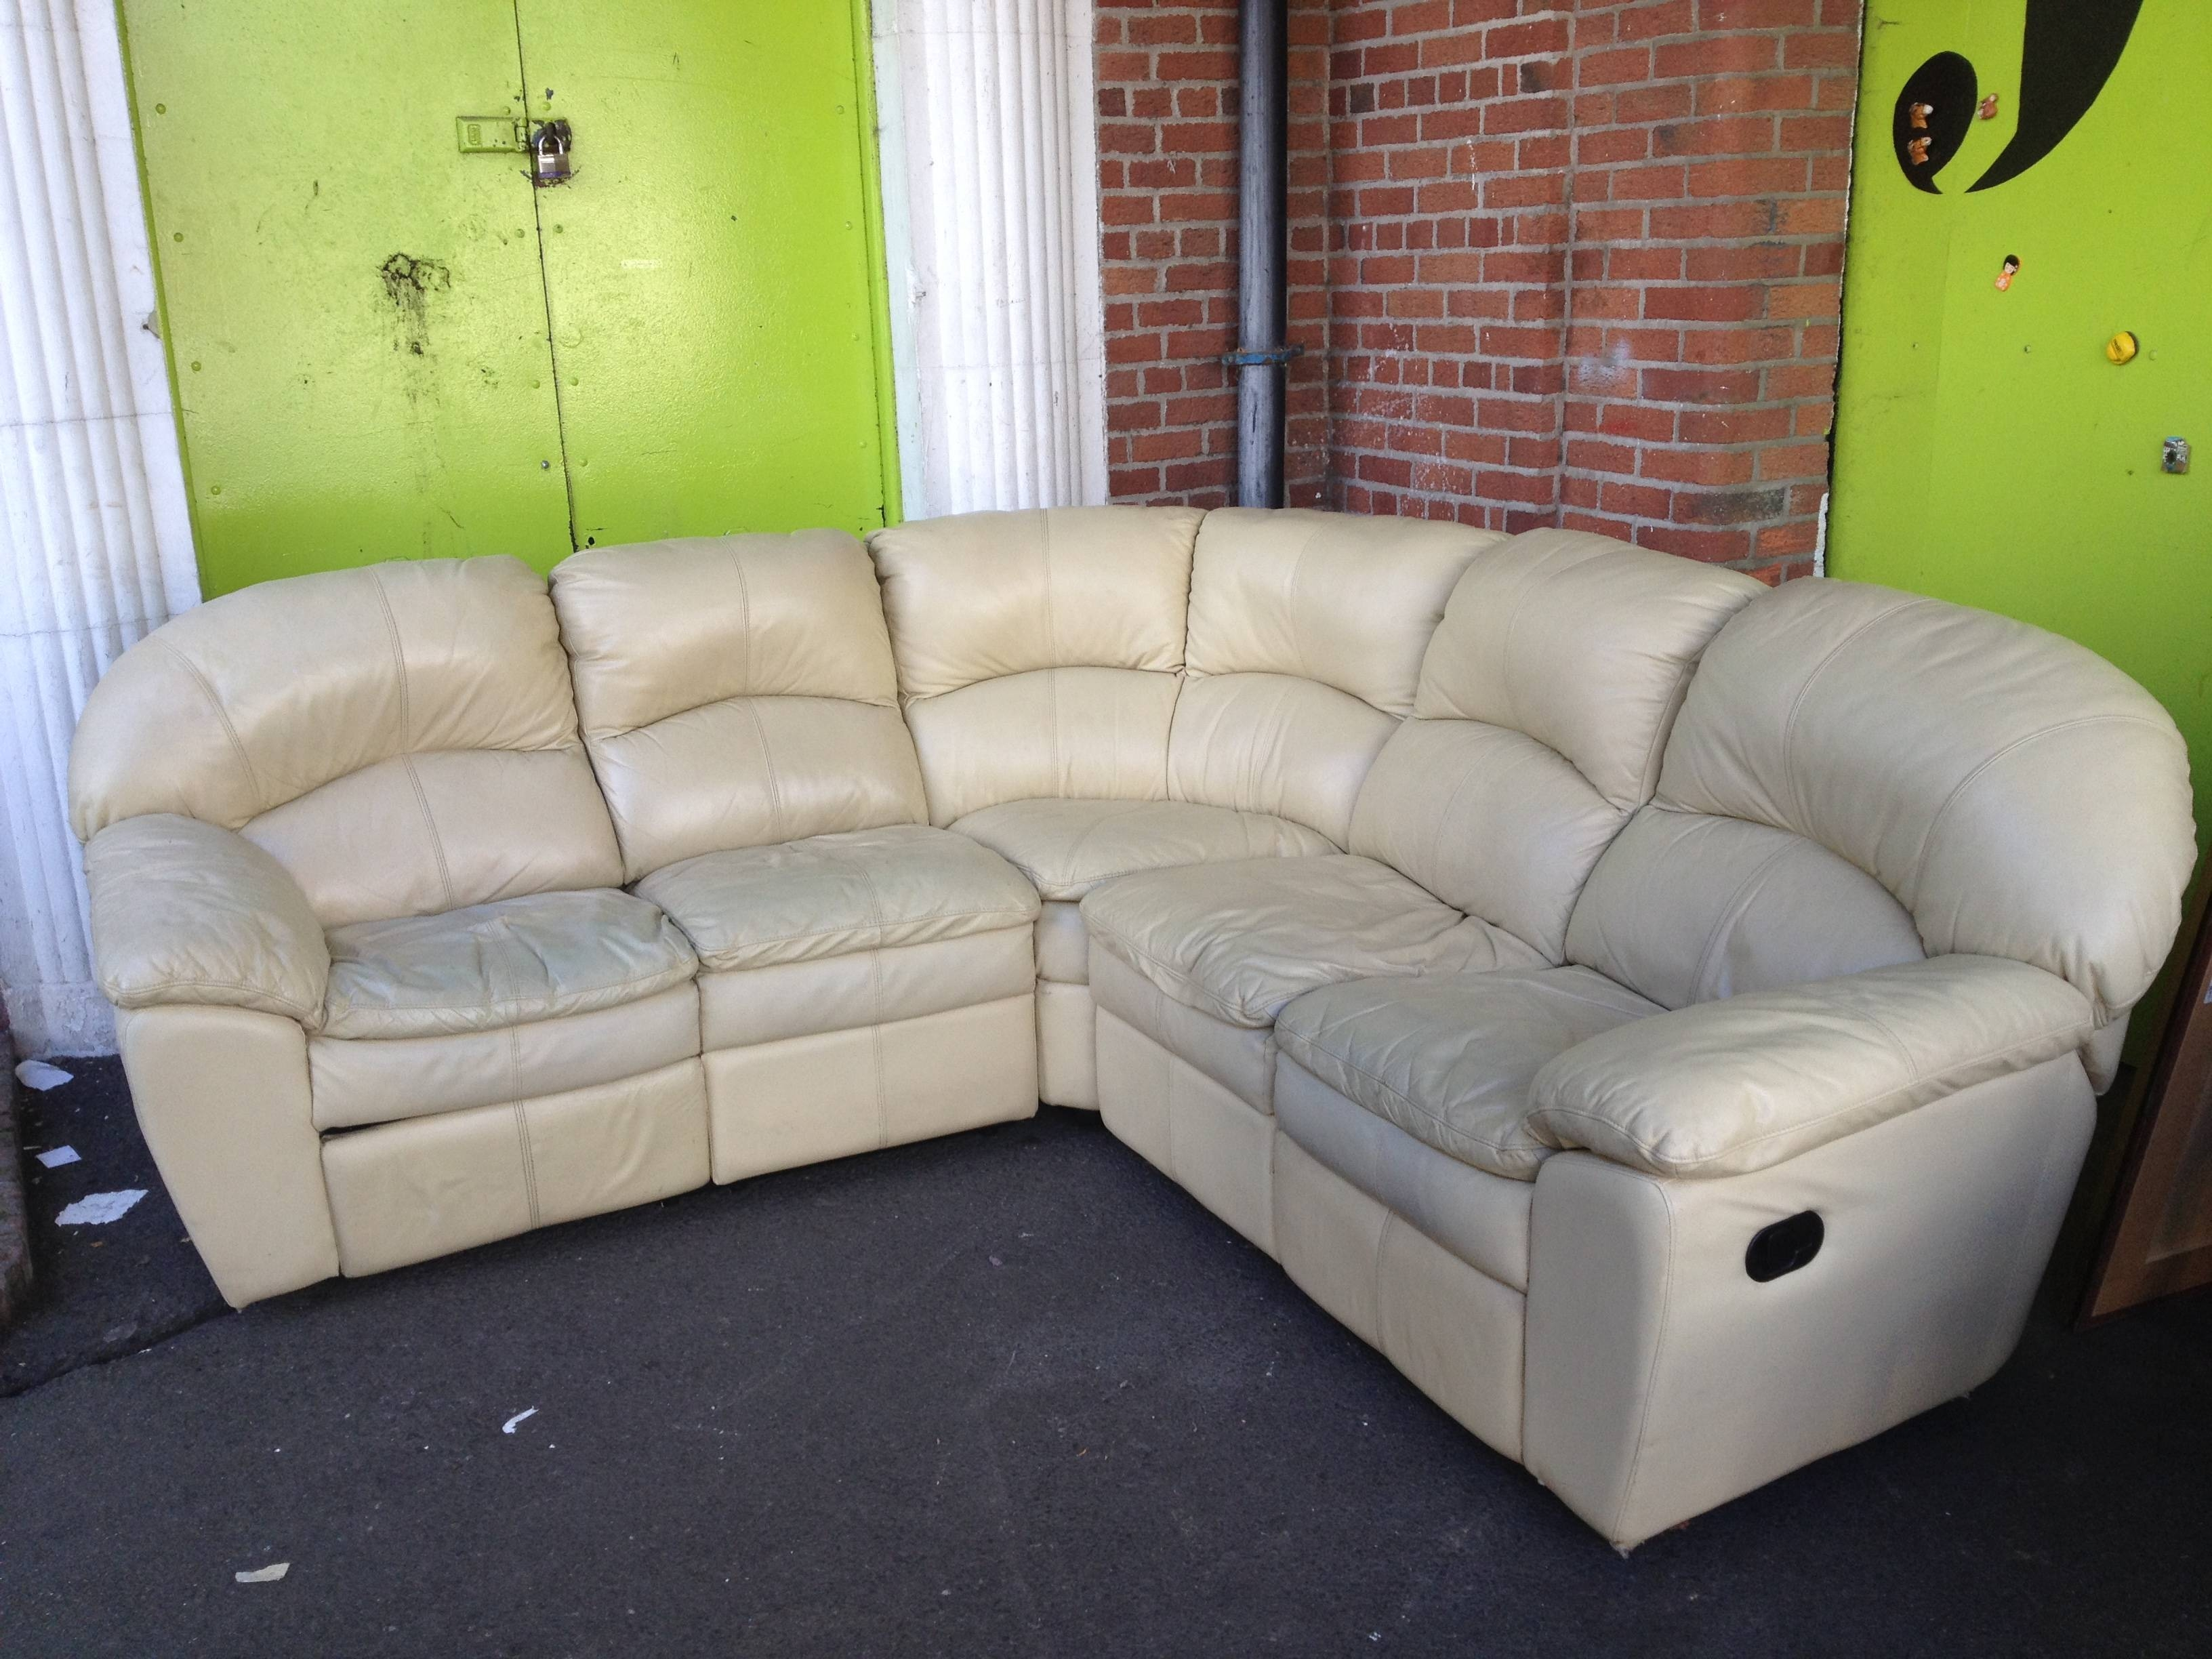 2Nd Hand Sofas For Sale | Buy Cheap Sofas And Couches In Dublin with regard to Sofas Cheap Prices (Image 1 of 30)